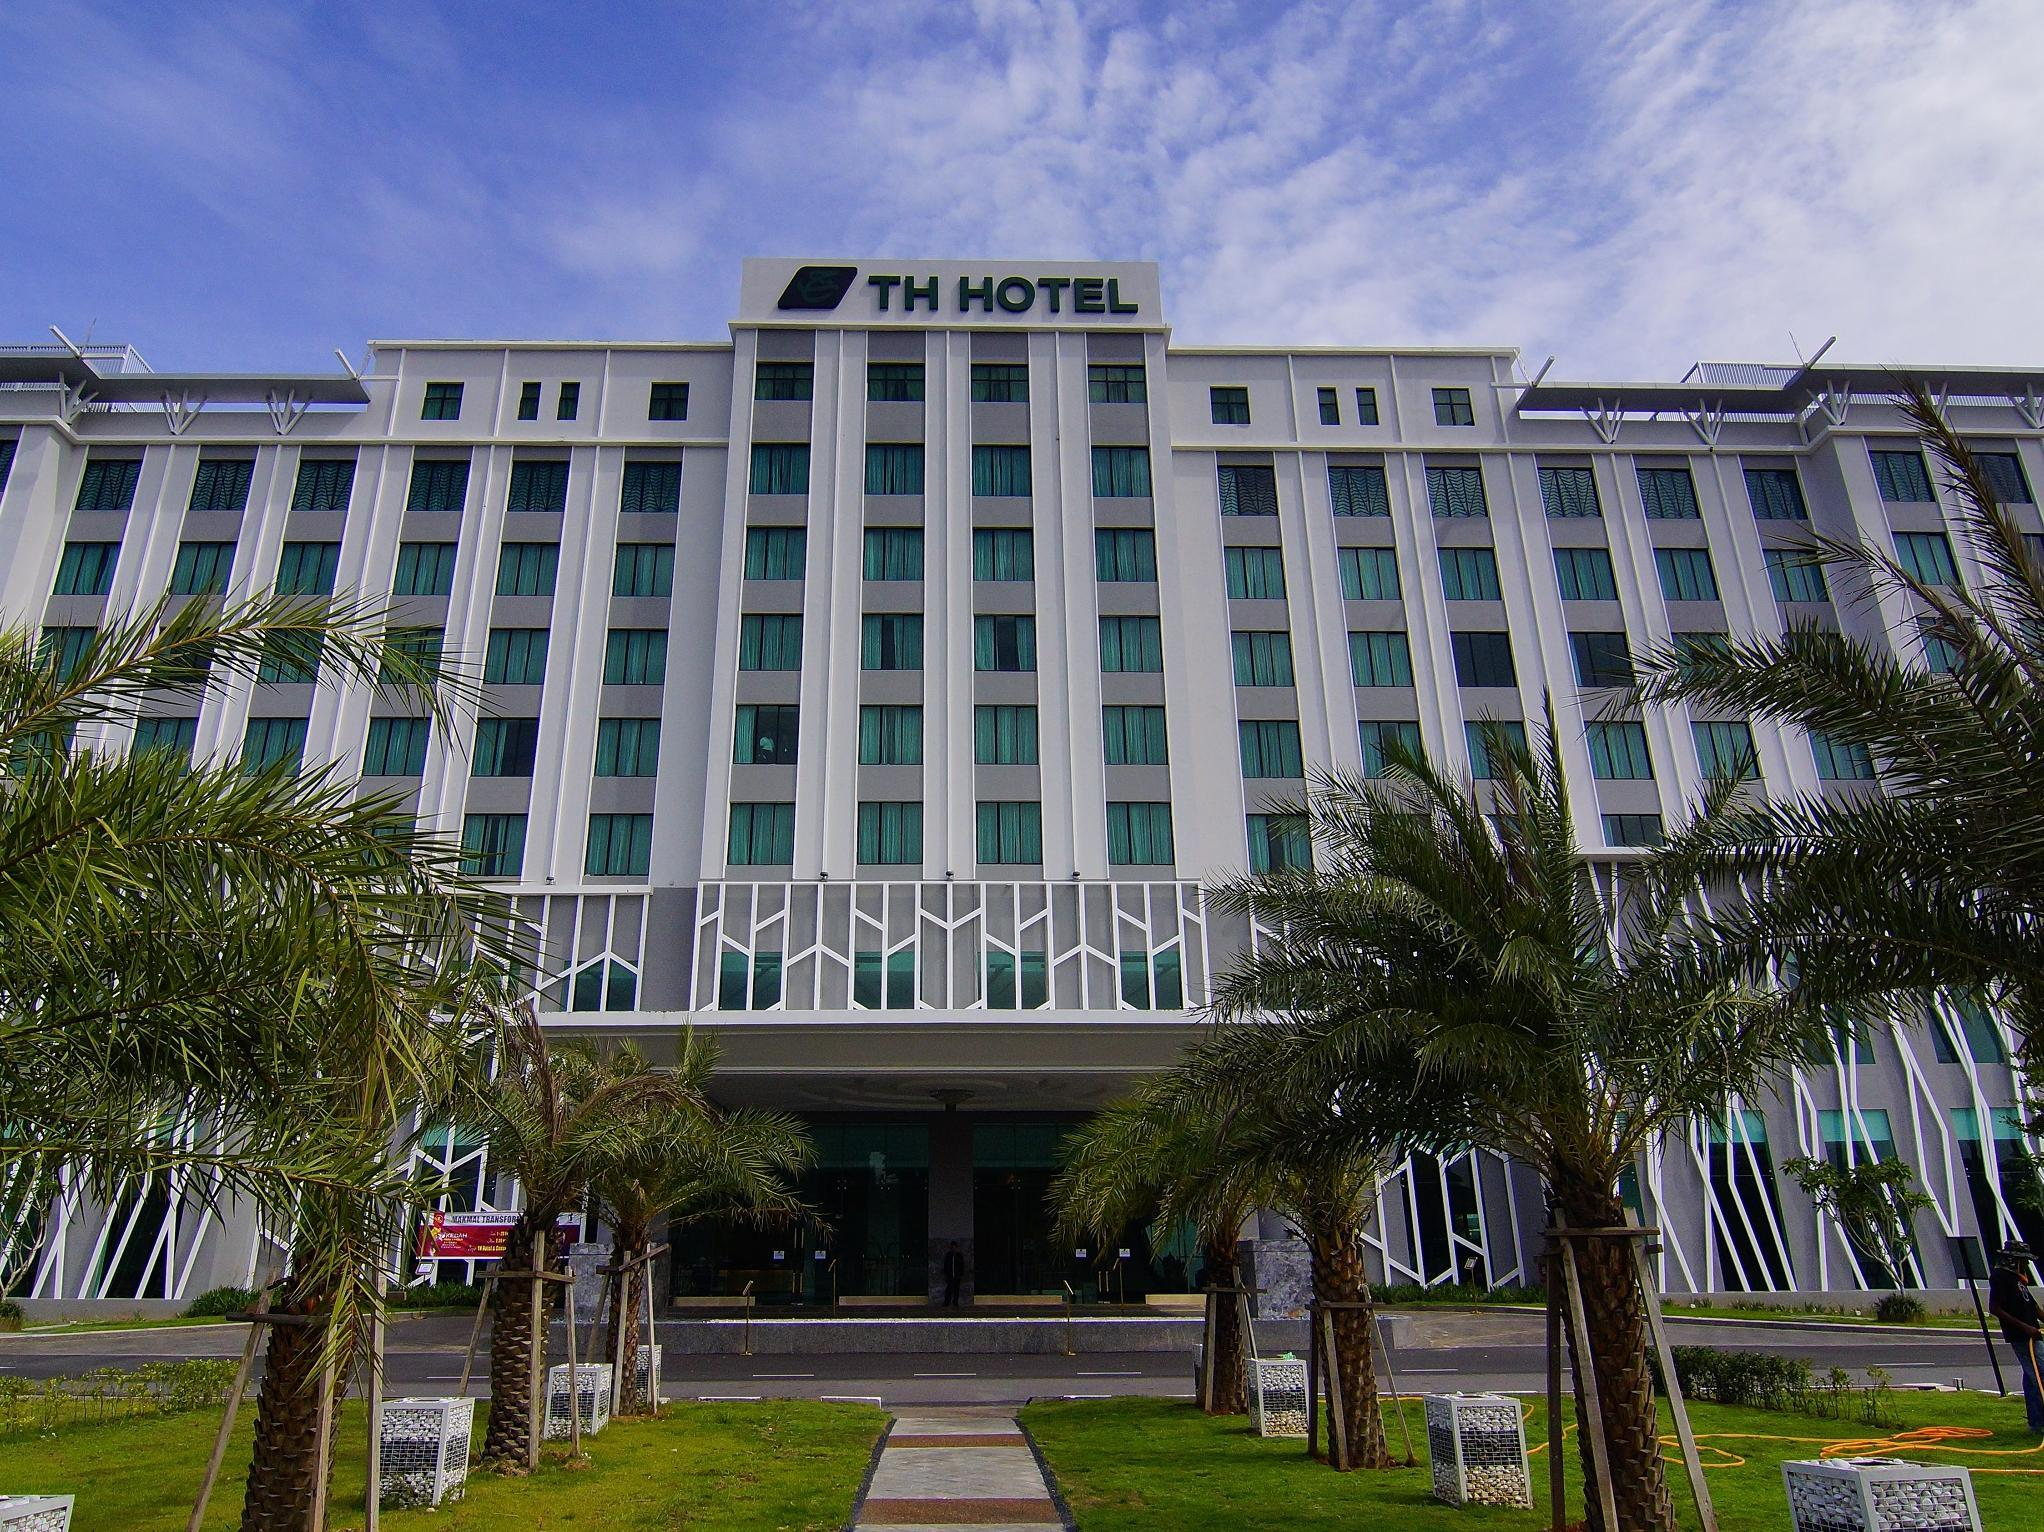 TH Hotel and Convention Centre Alor Setar